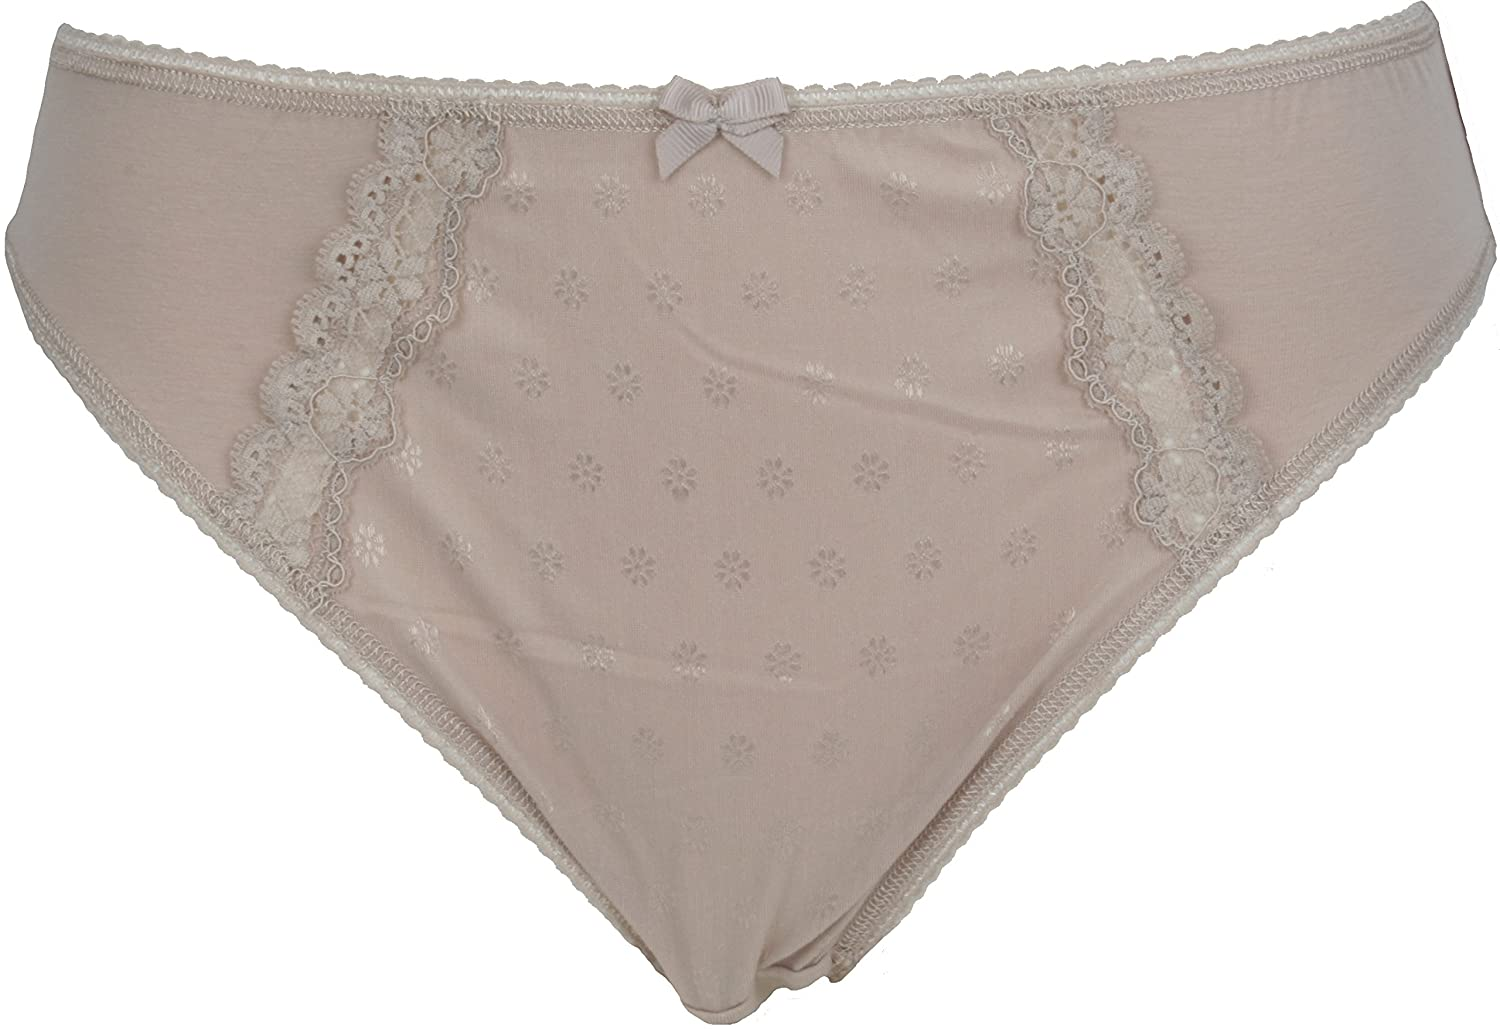 Ex Store Cotton and Lace No VPL High Leg Knickers